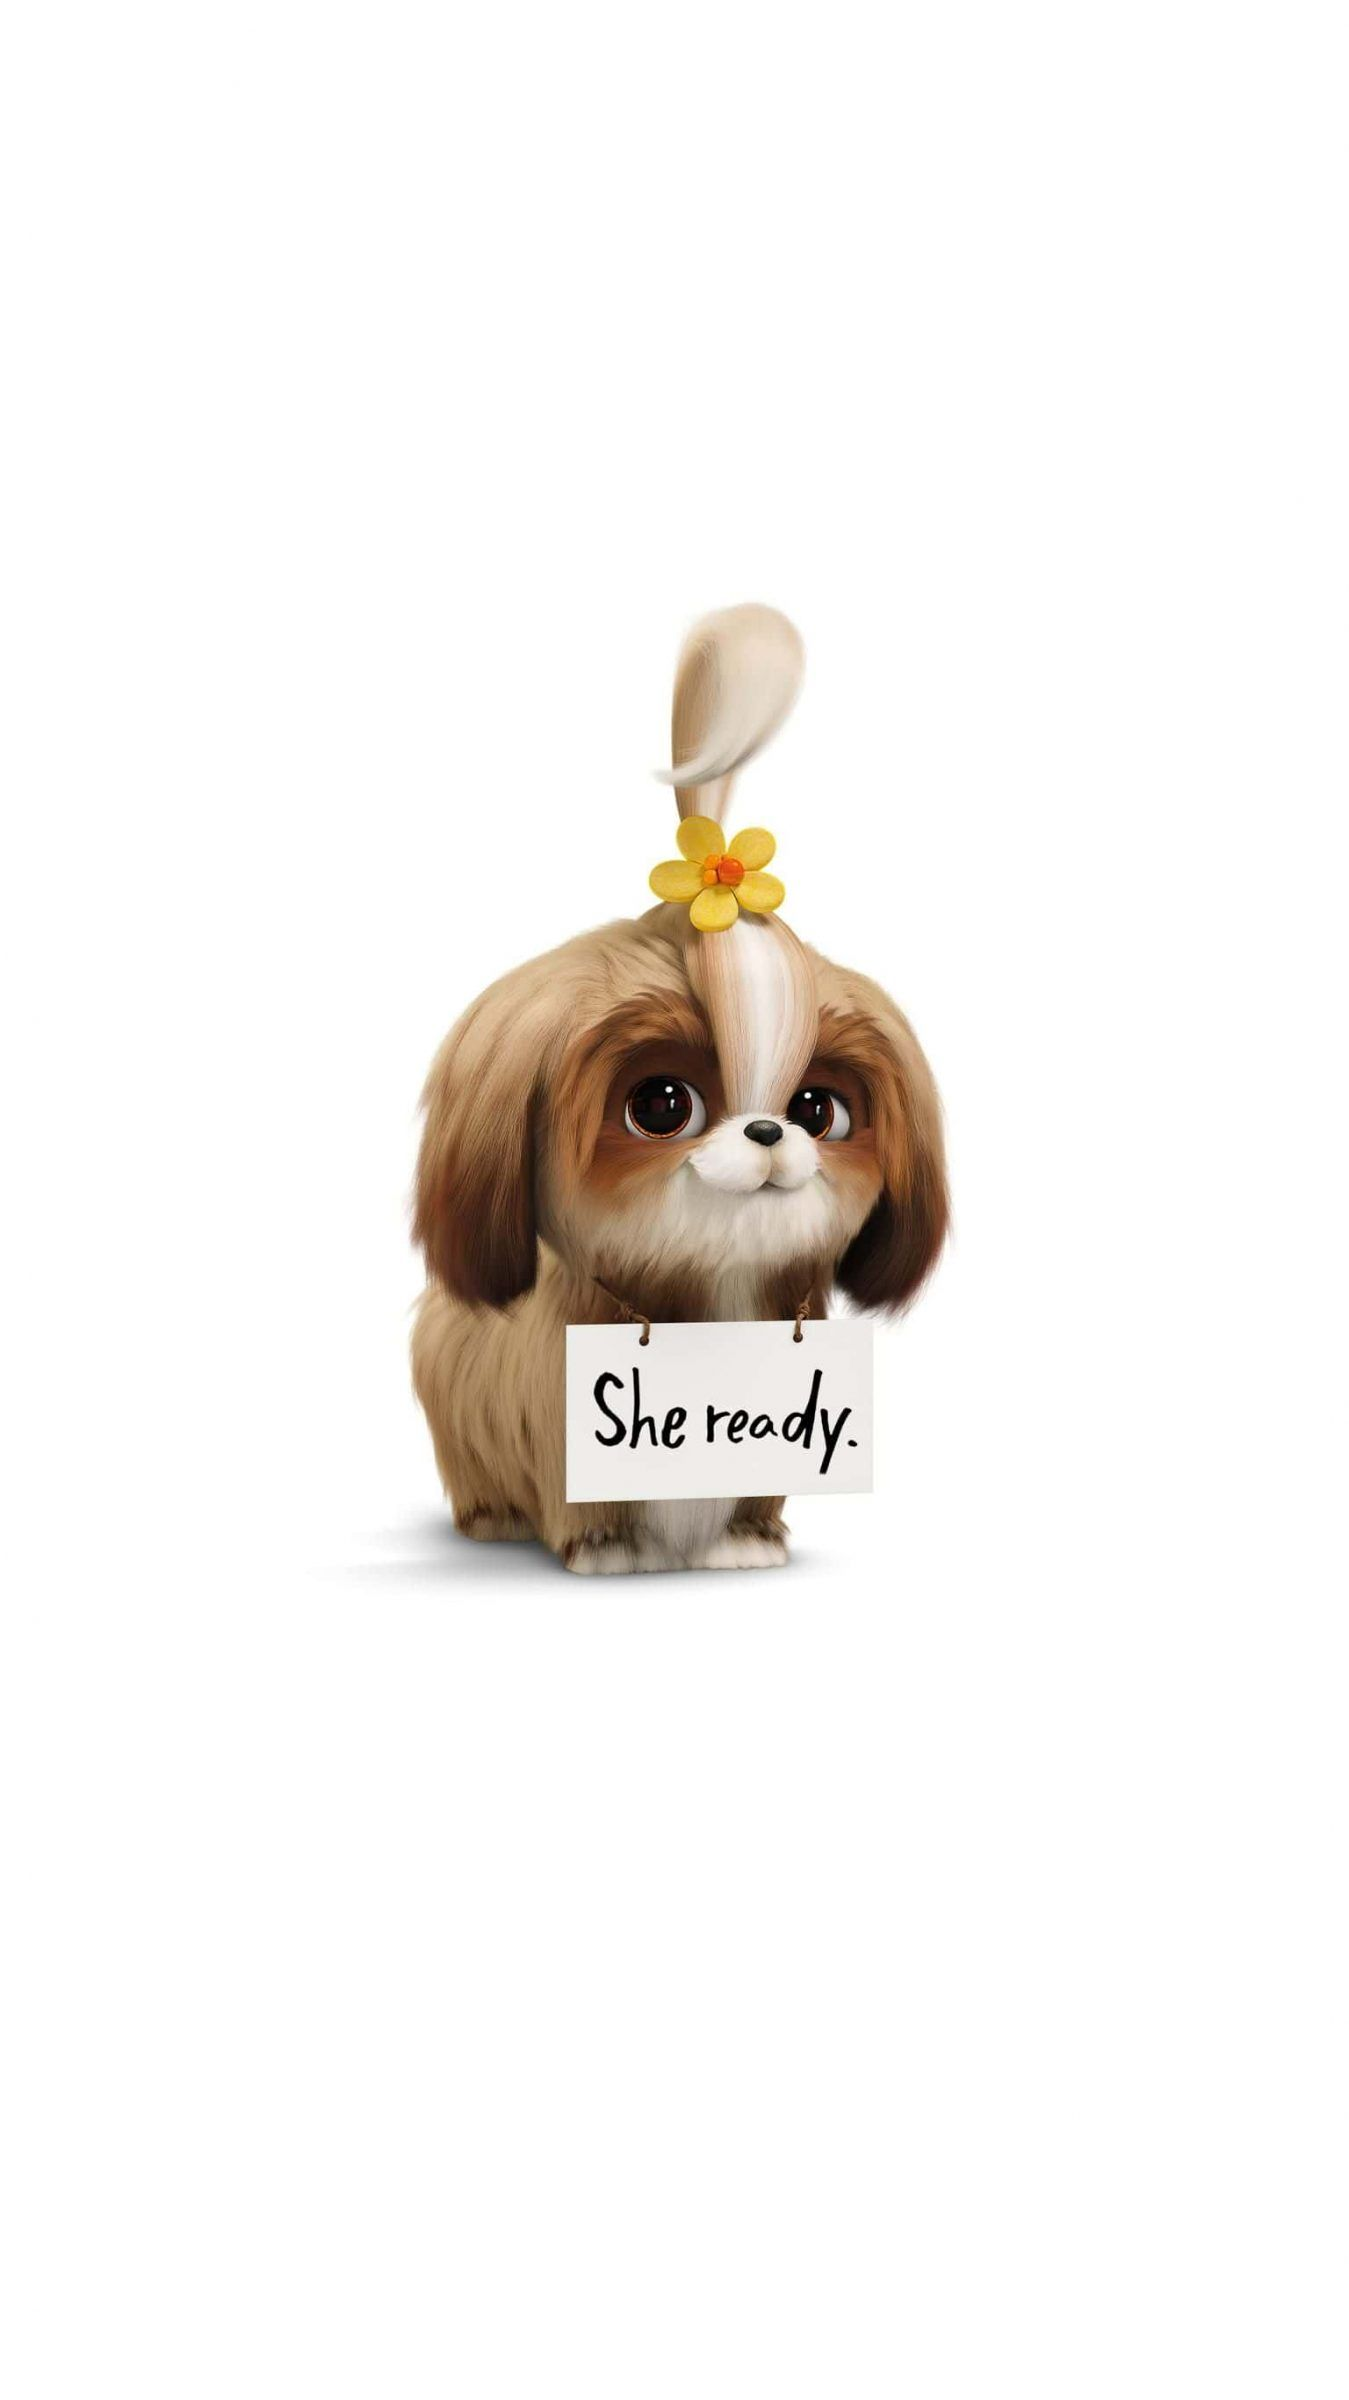 The Secret Life of Pets 2 Cartoon wallpaper, Secret life